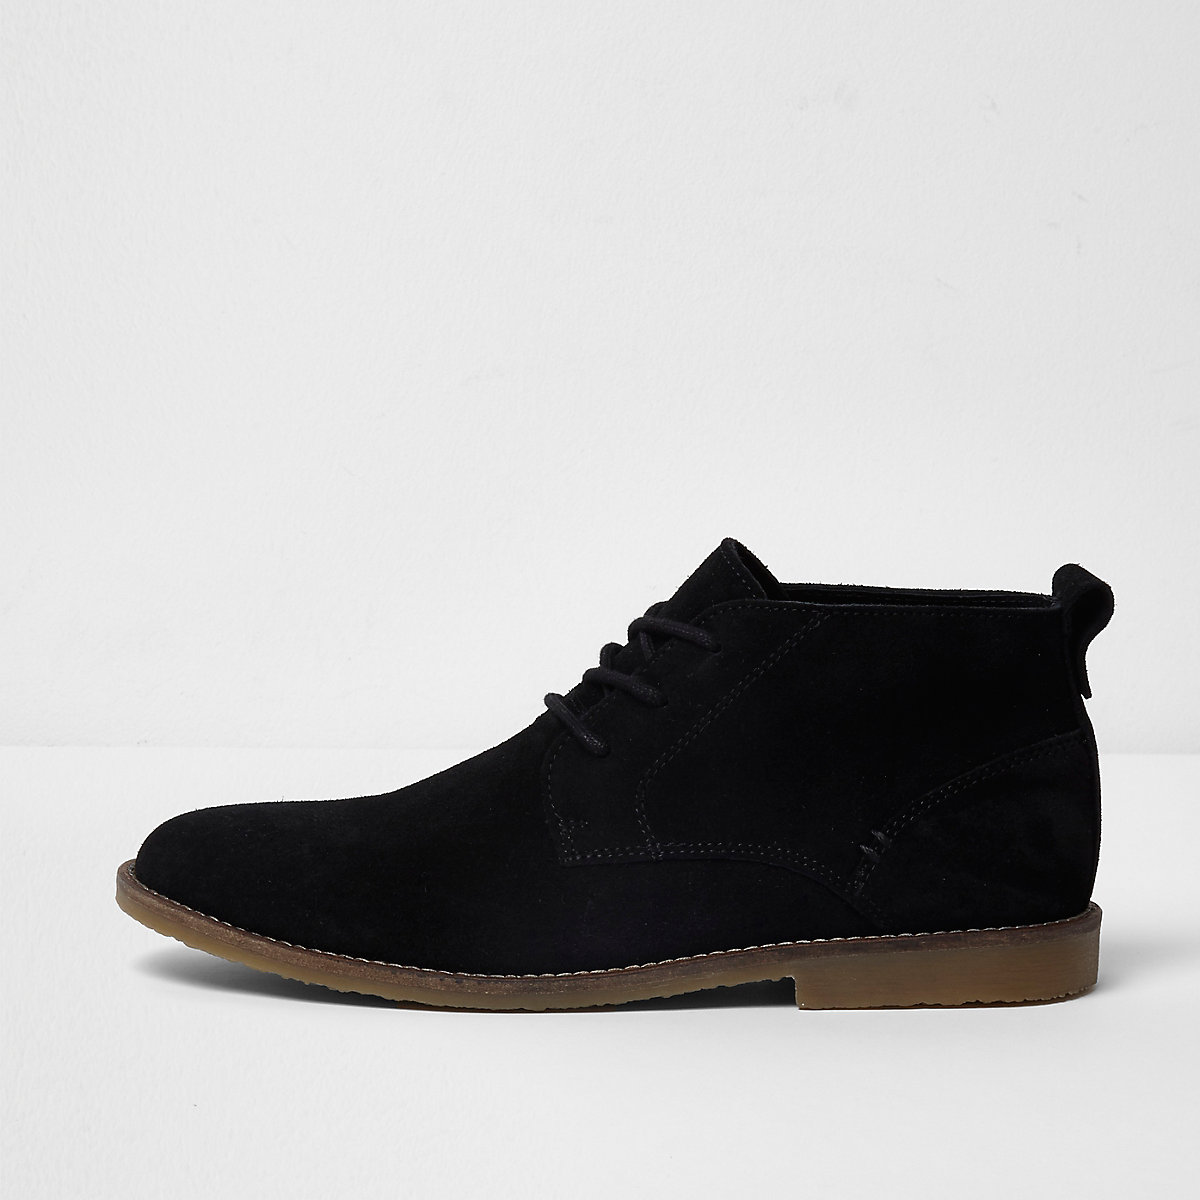 Black wide fit suede desert boots